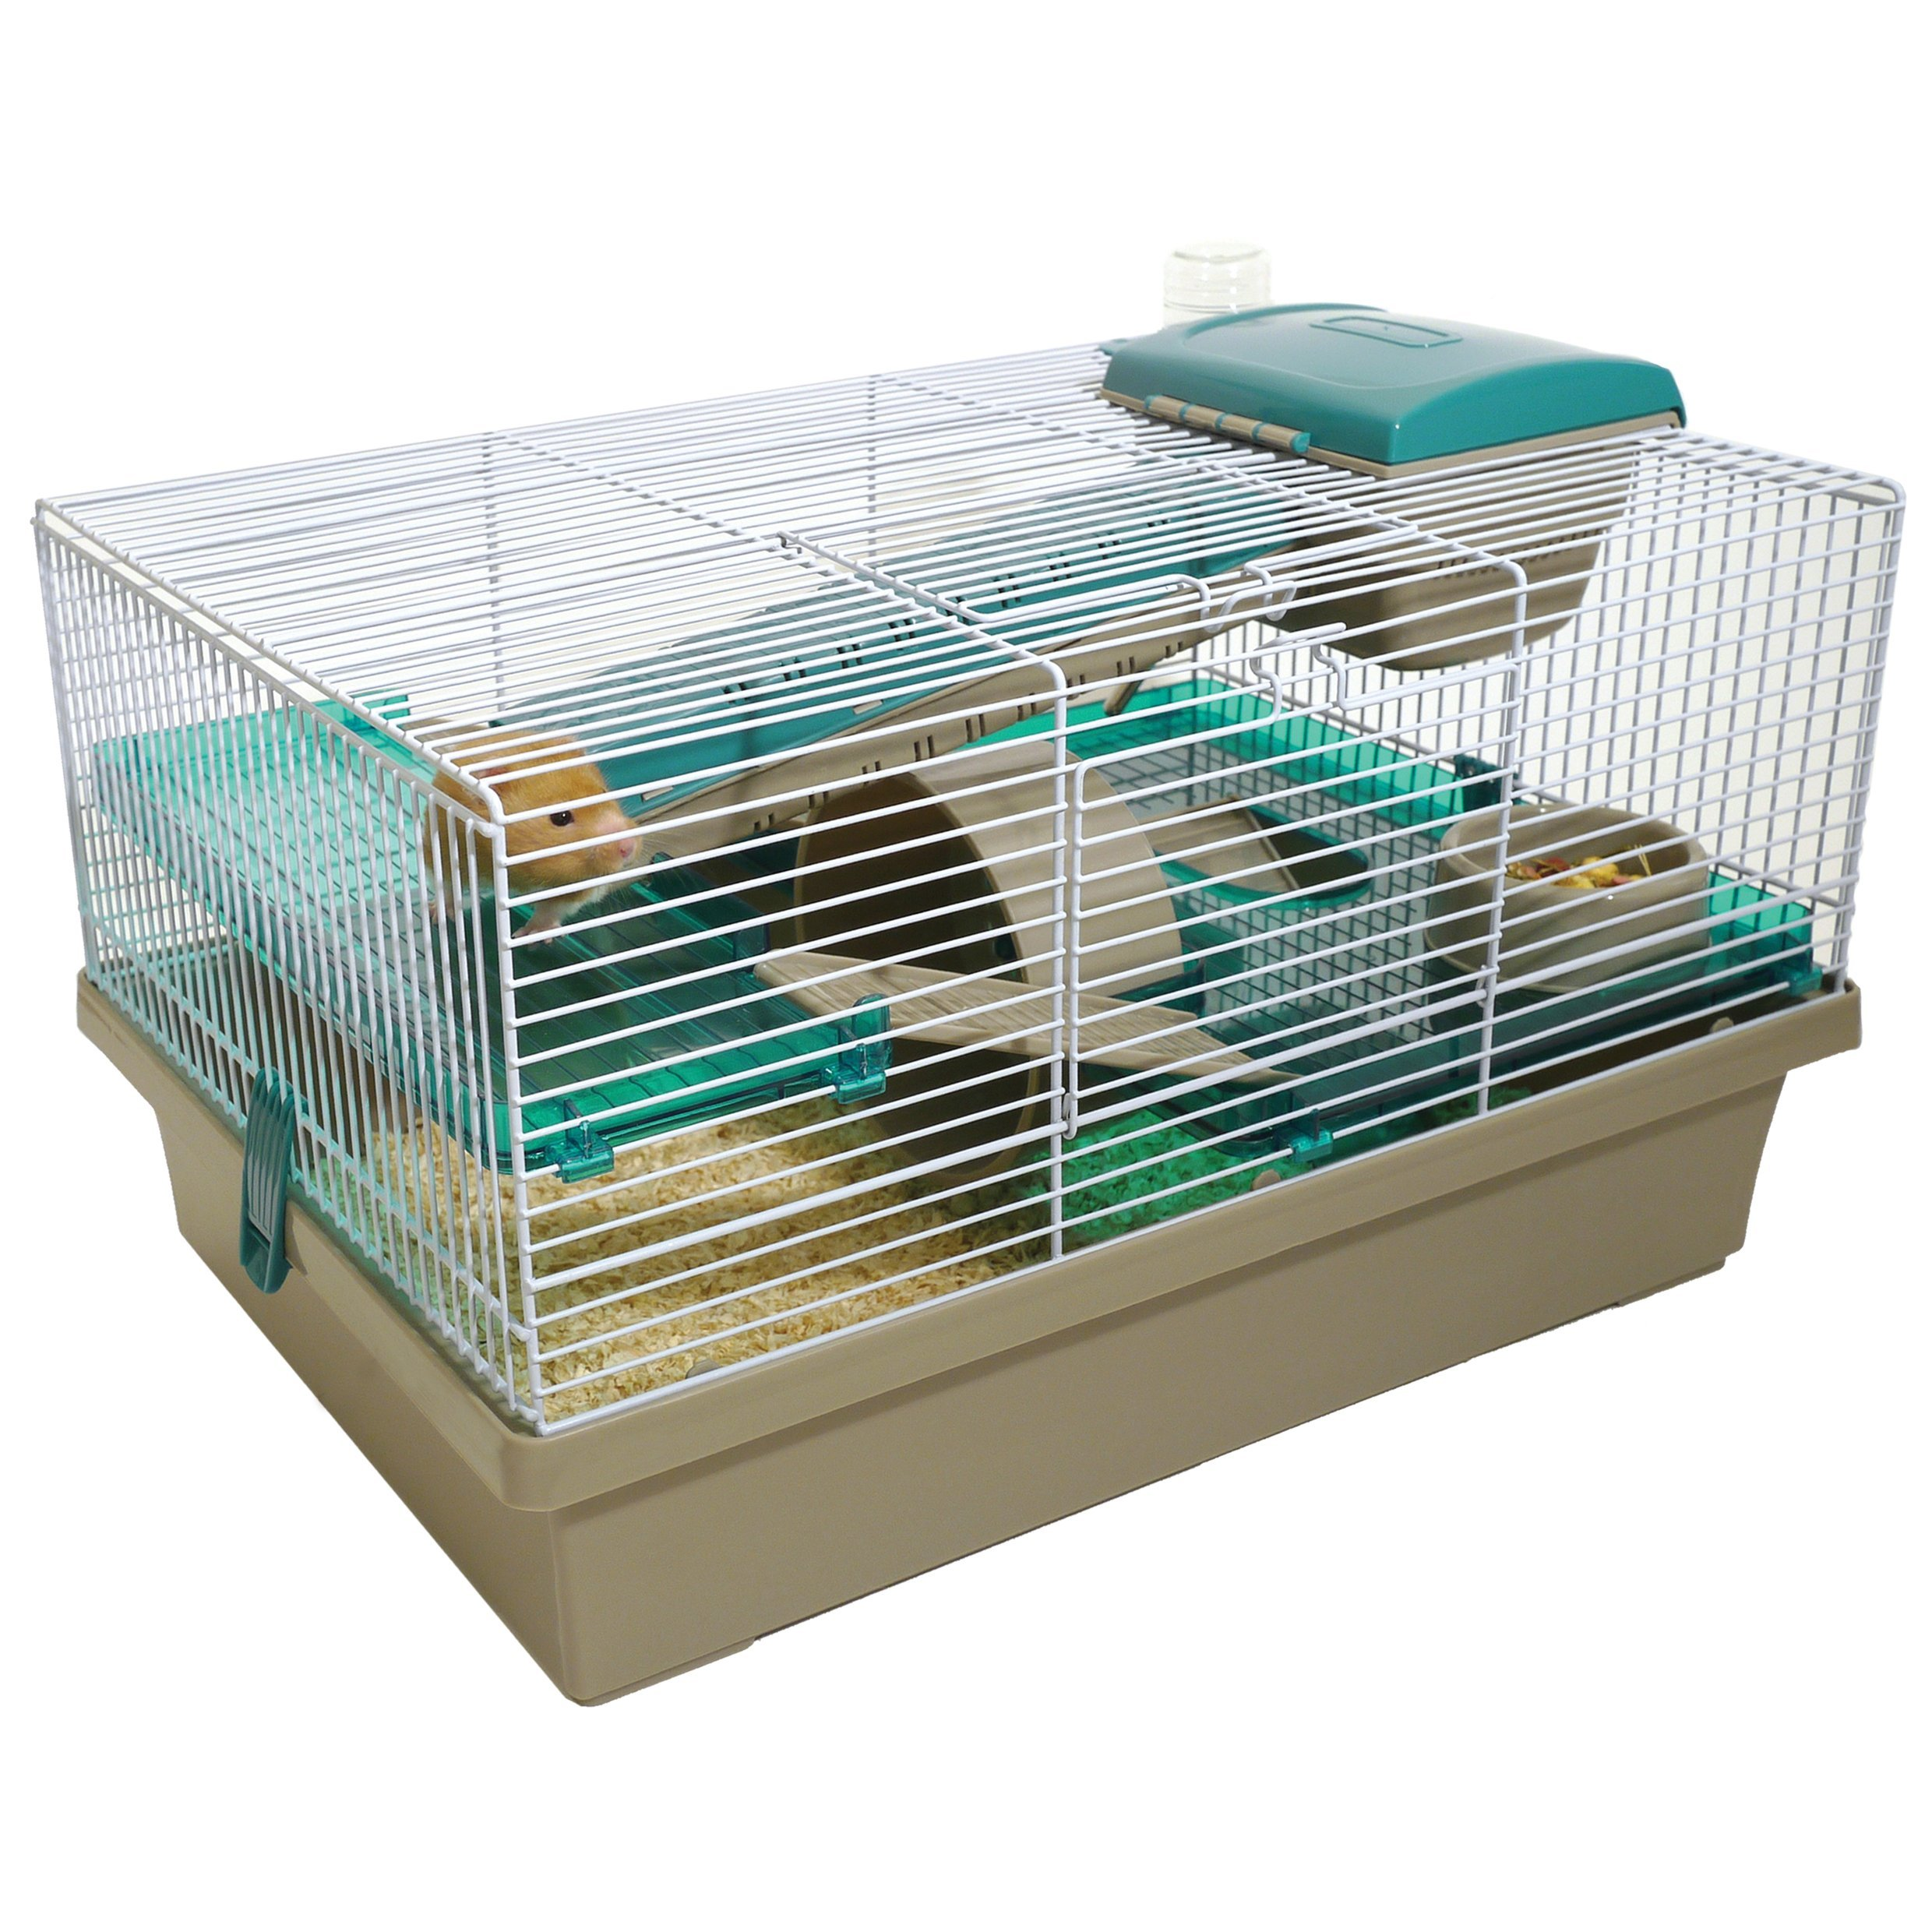 Pico Translucent Teal - Hamster & Small Animal Home/Cage by Rosewood Pet